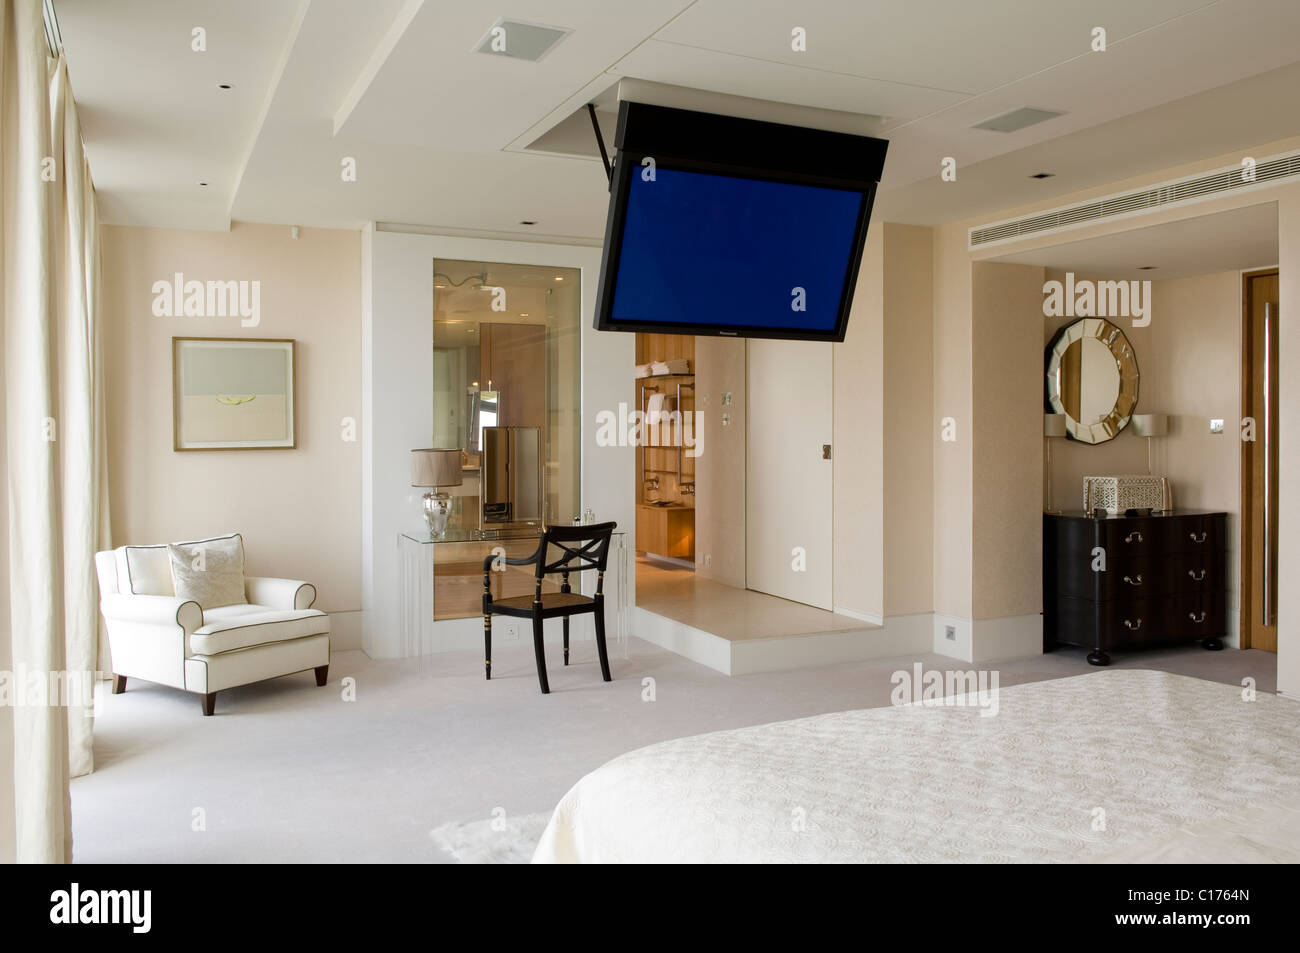 How High To Mount Tv On Wall In Bedroom Flat Screen Plasma Tv Mounted To The Ceiling In Modern